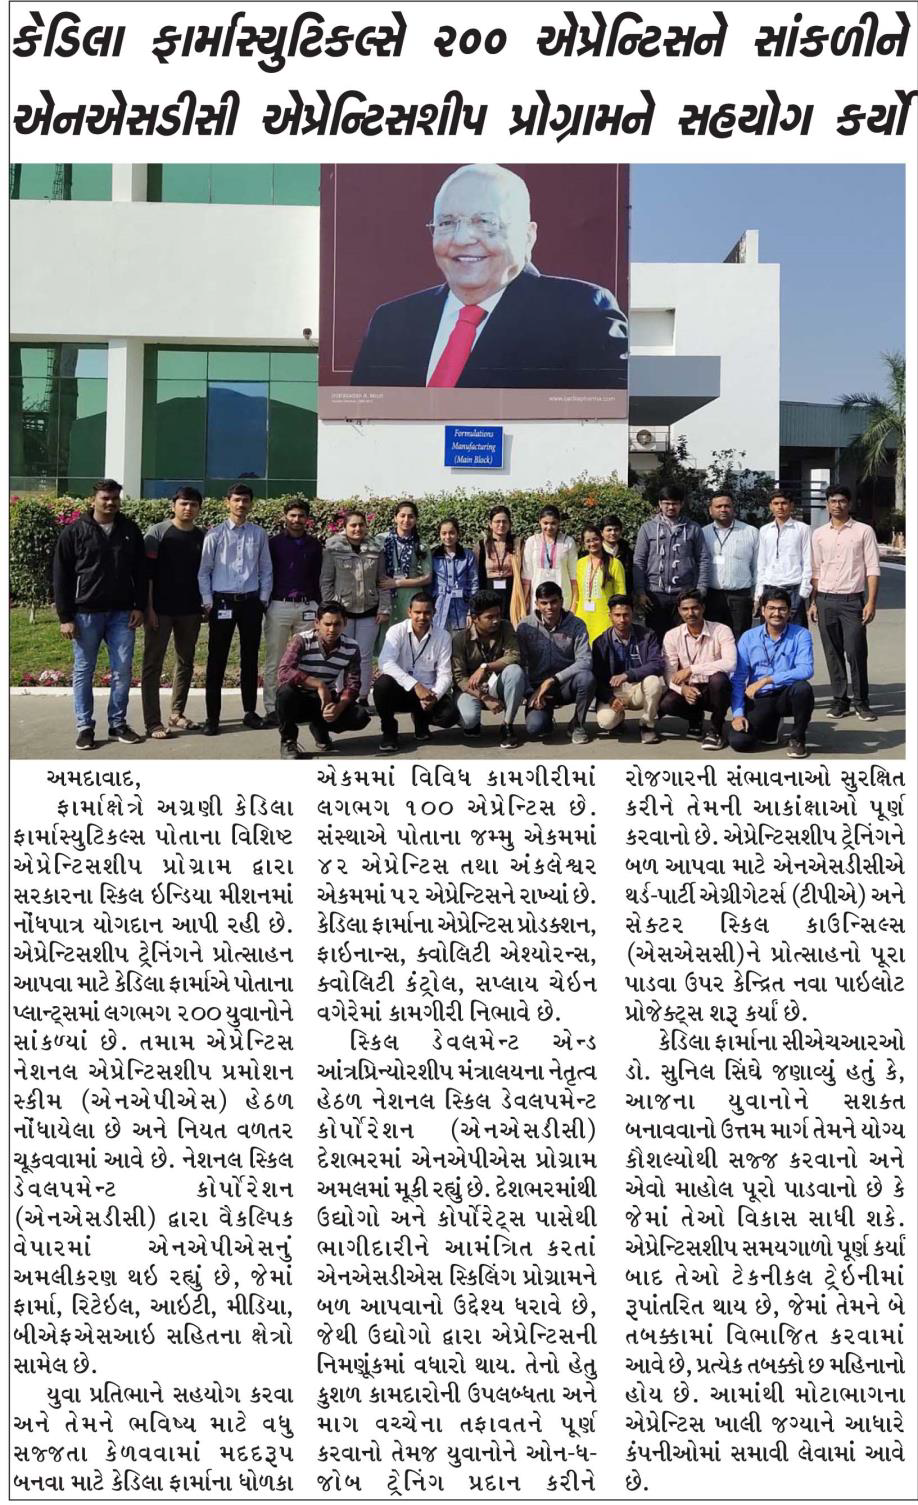 Samachar Today Coverage